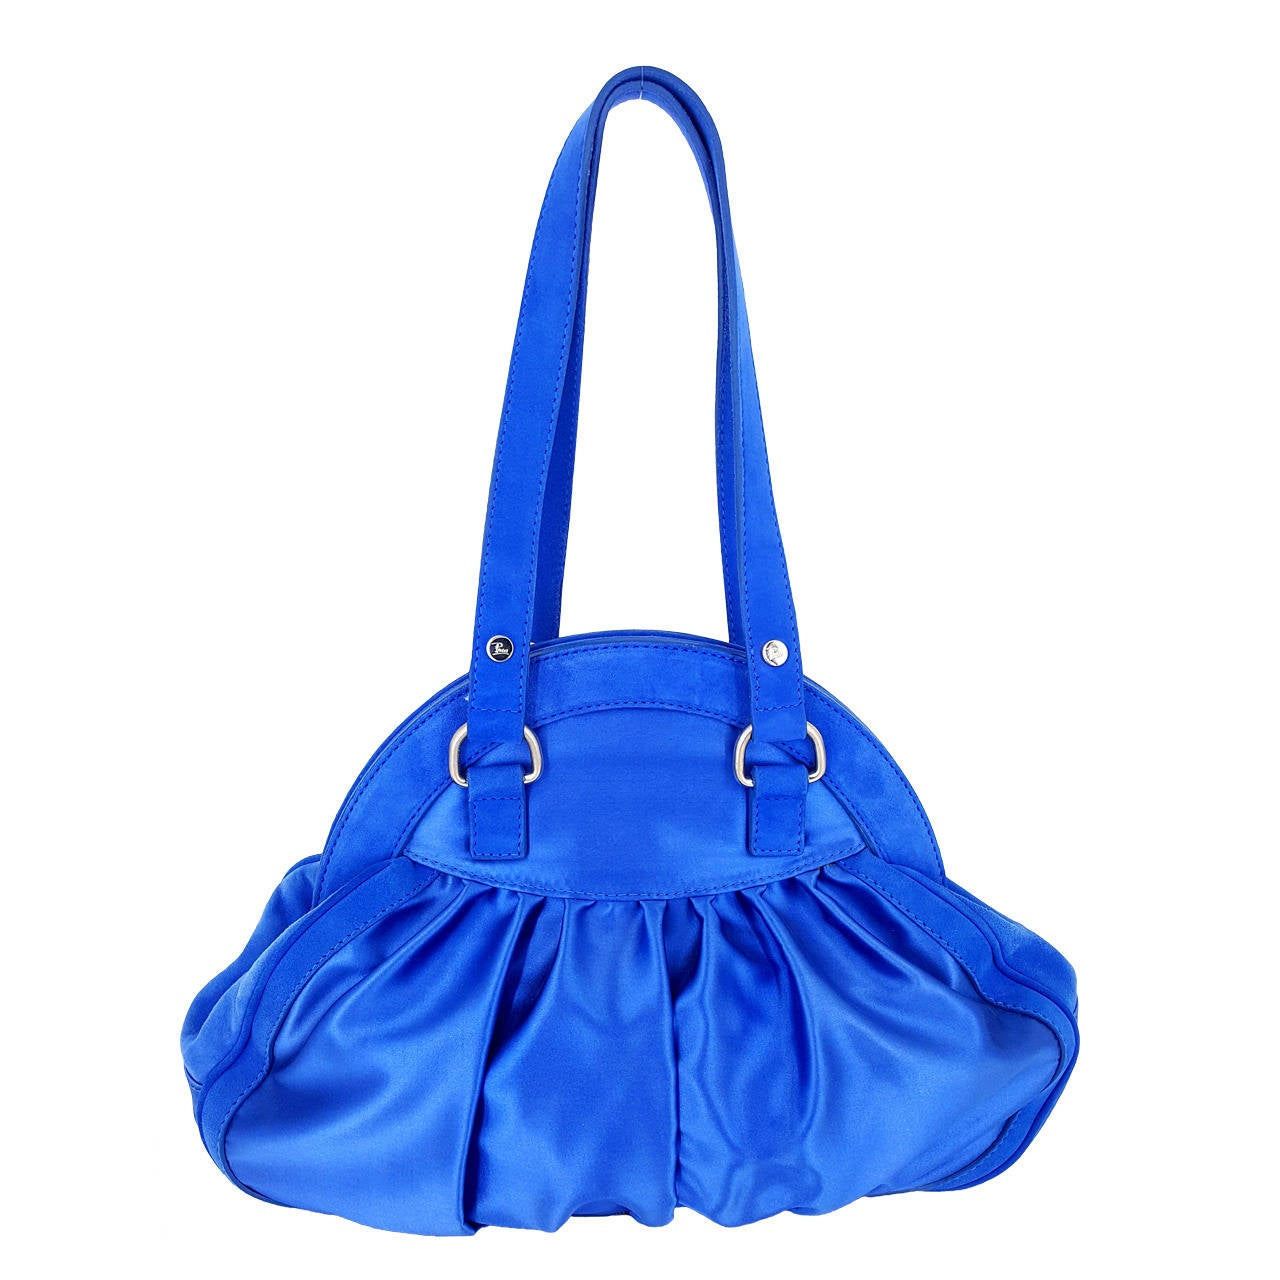 Home  Fashion  Handbags and Purses  Shoulder Bags